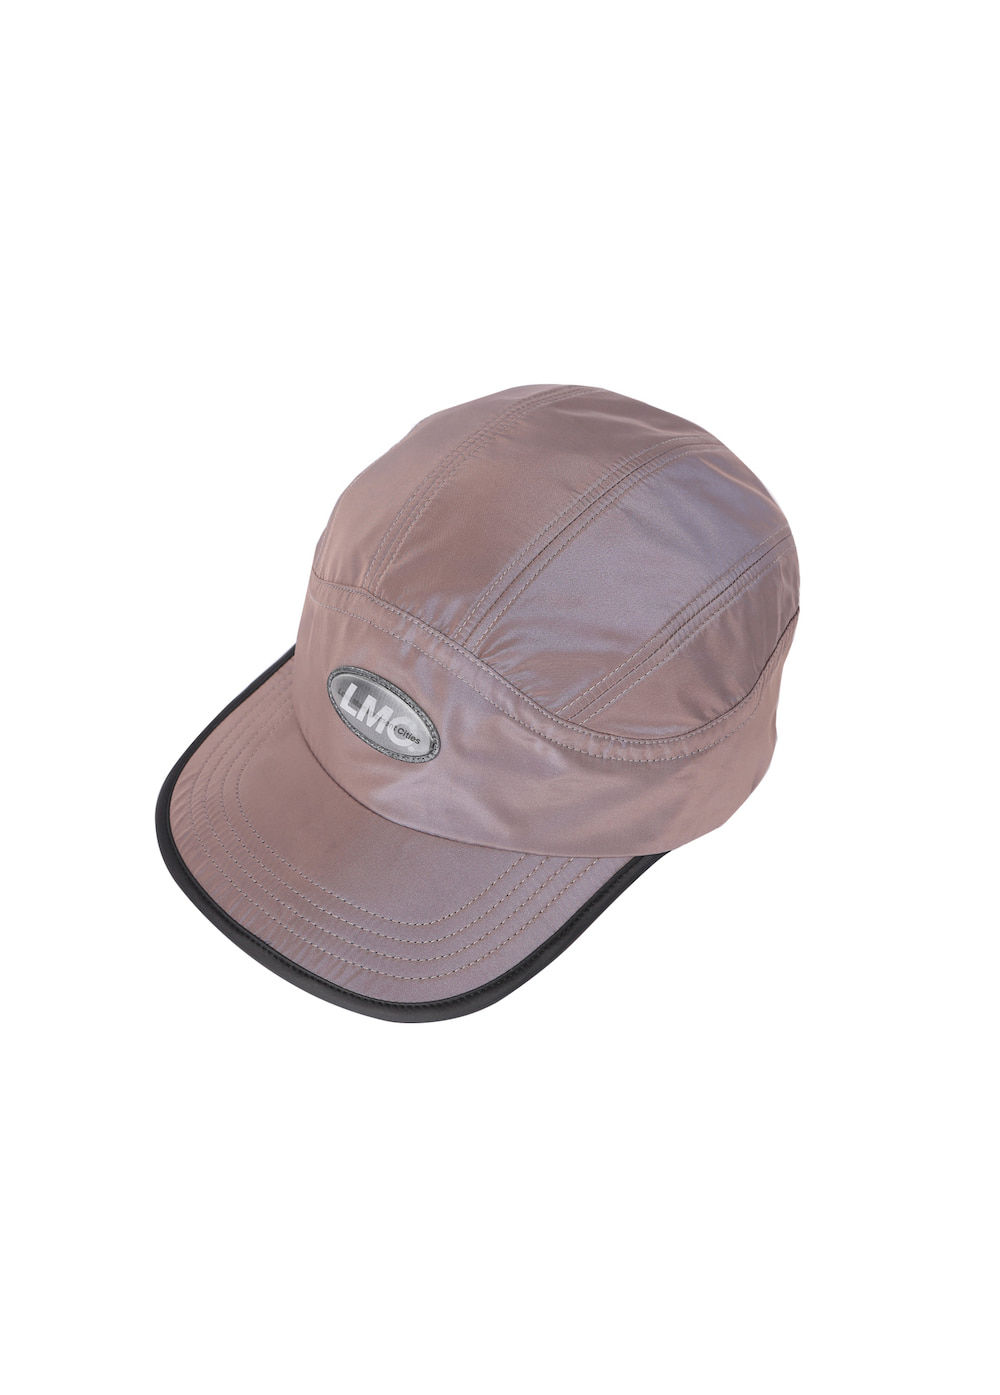 LMC LENTICULAR TRAINING CAP purple